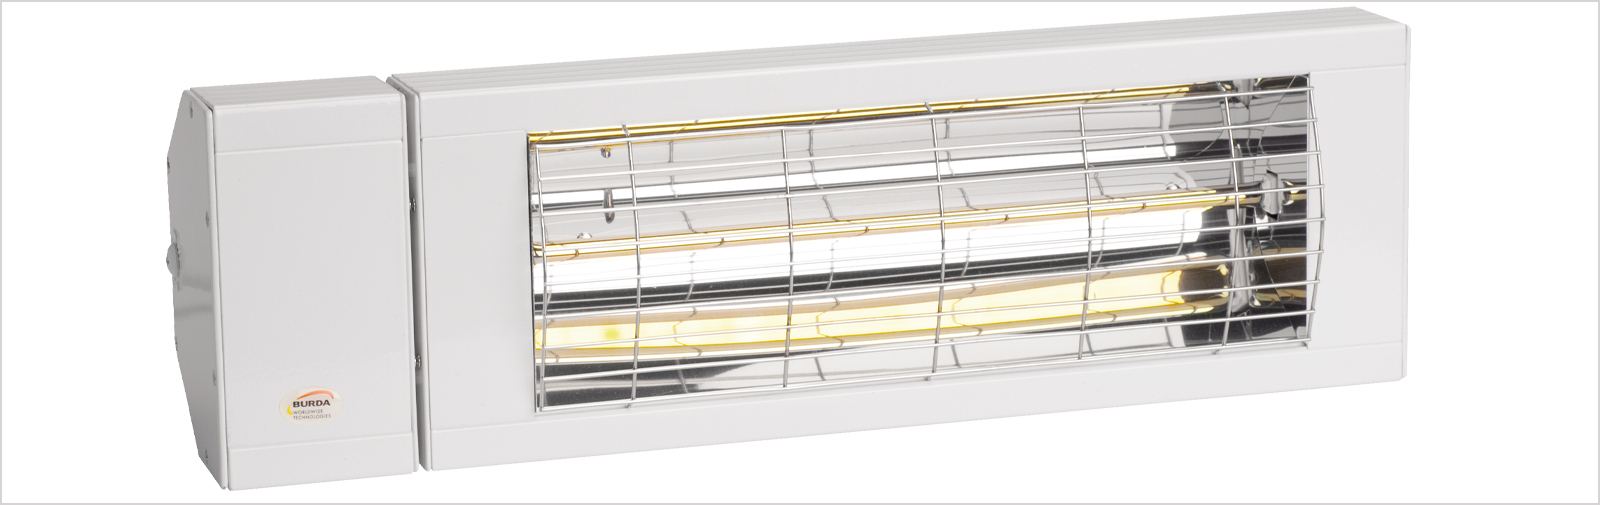 infrared radiant heater IP24 2